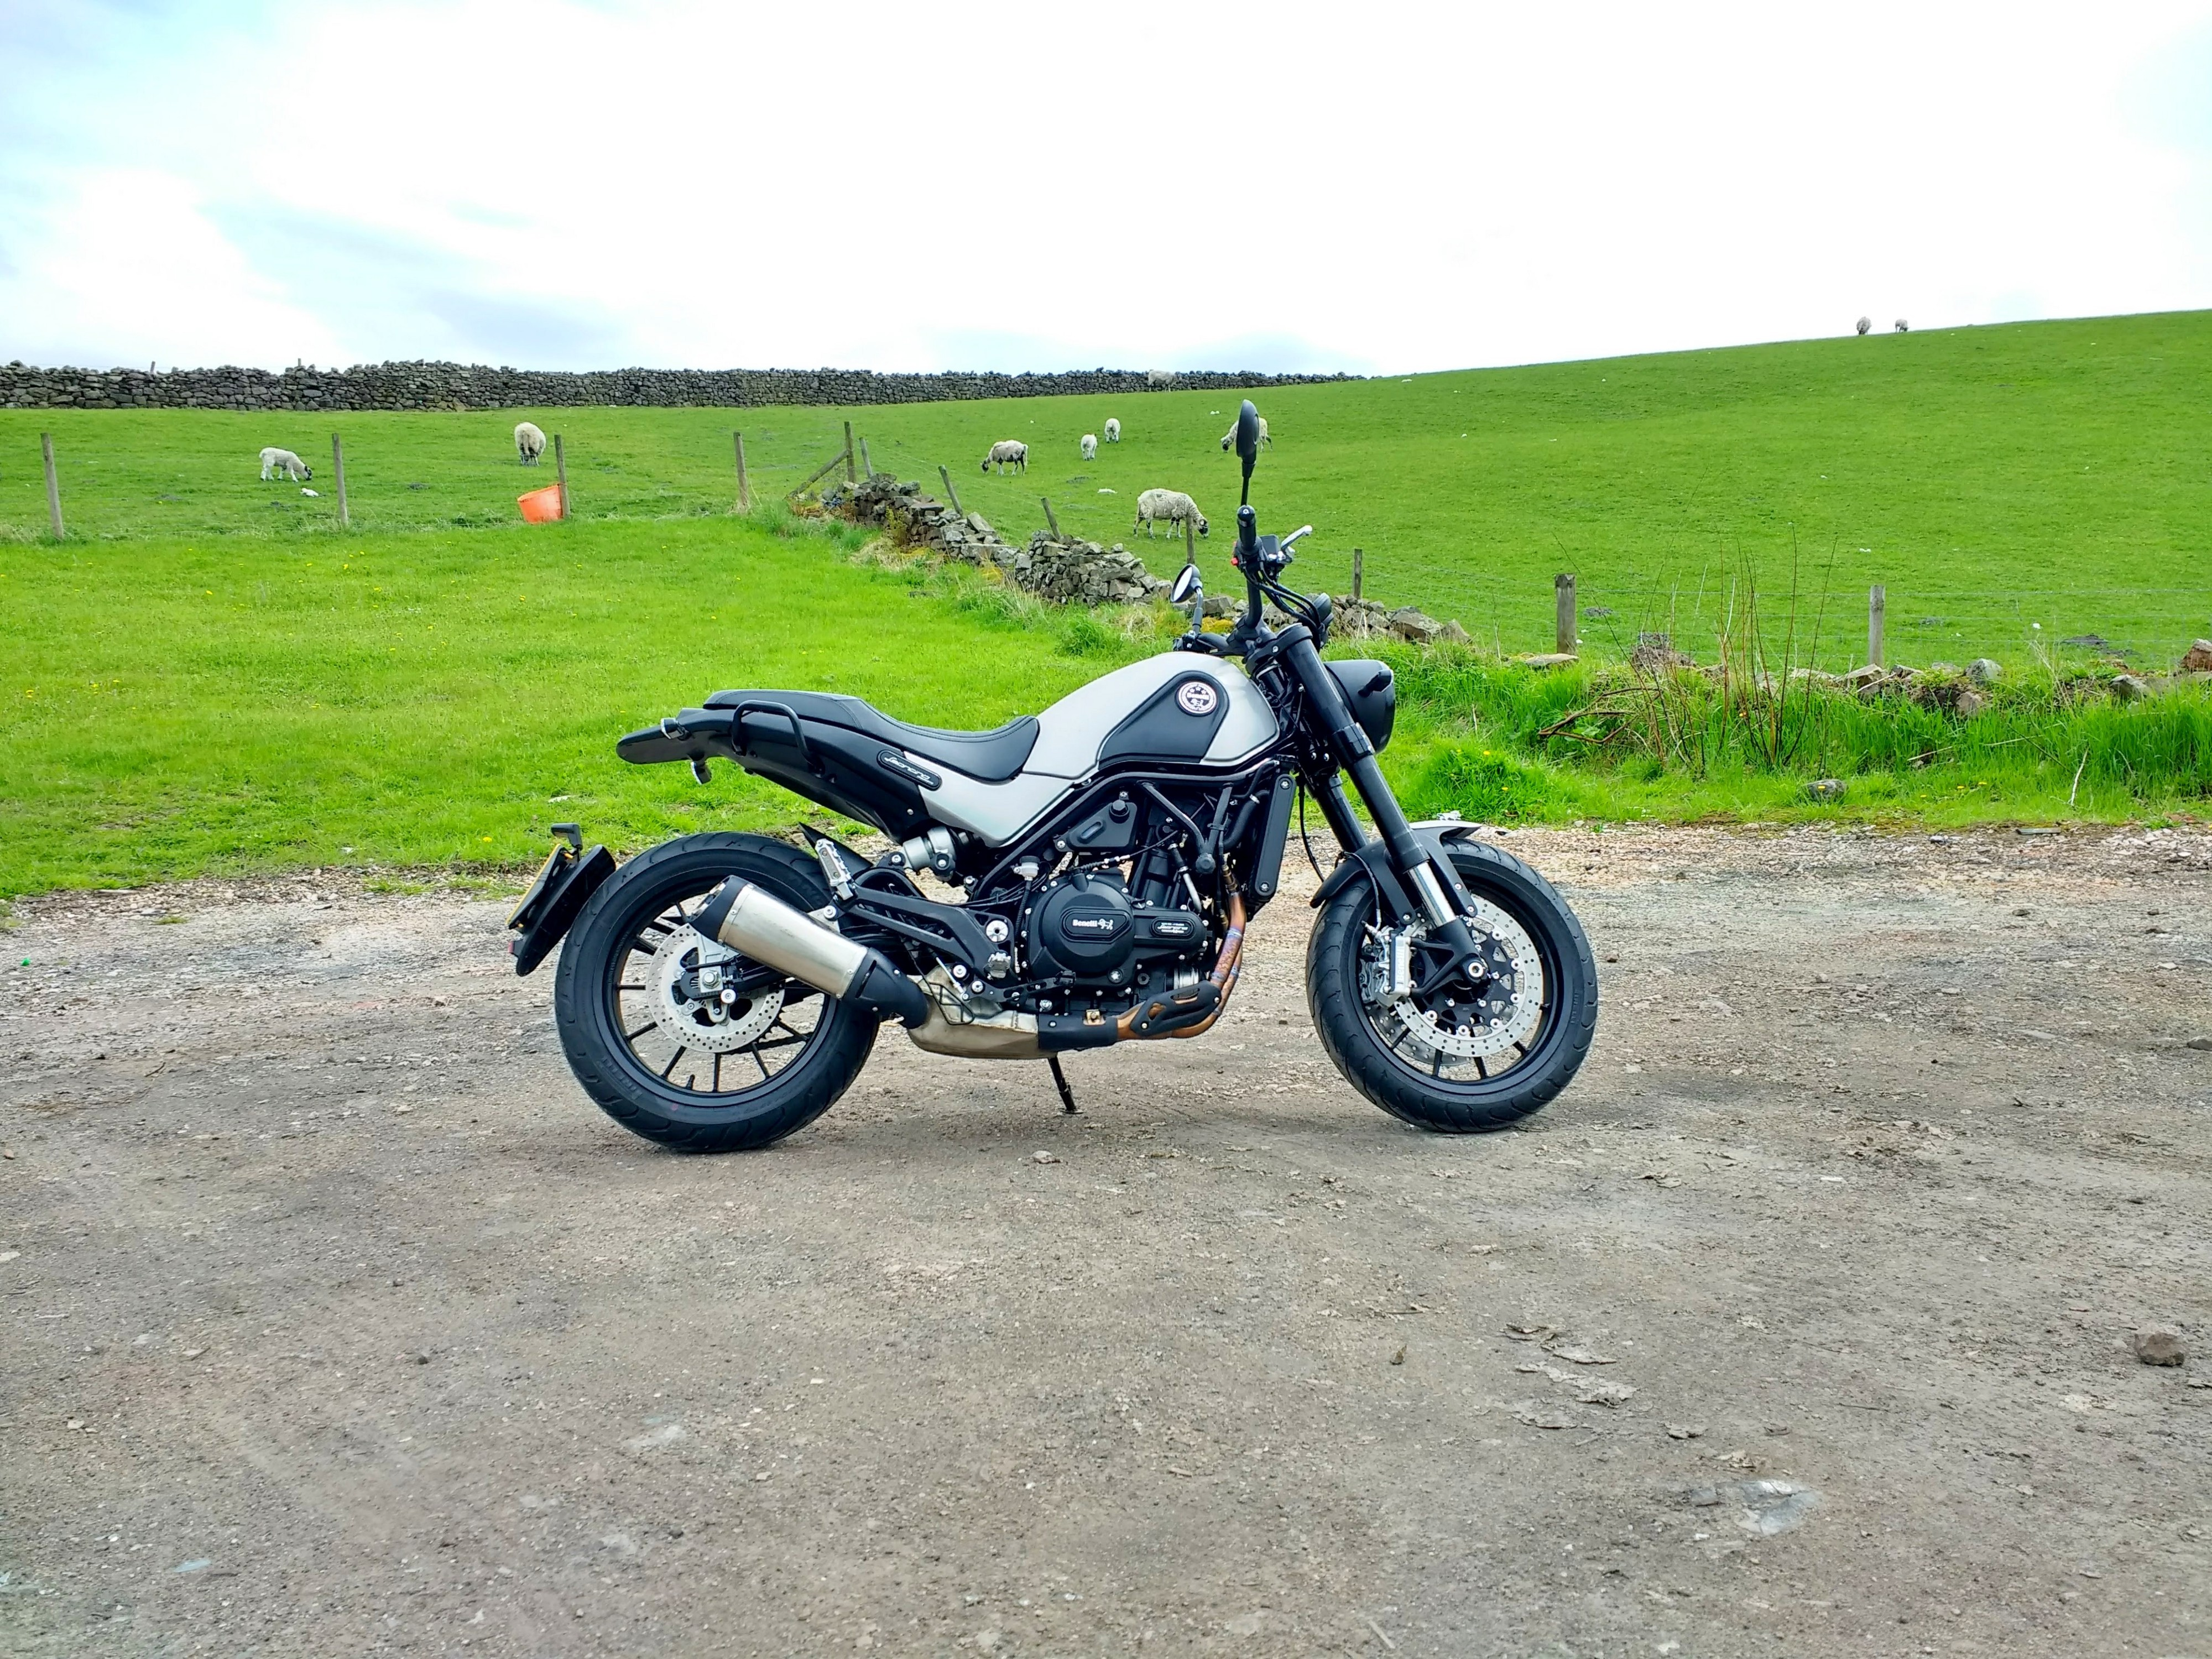 Motorcycle Review — 2018 Benelli Leoncino 500 - Richard